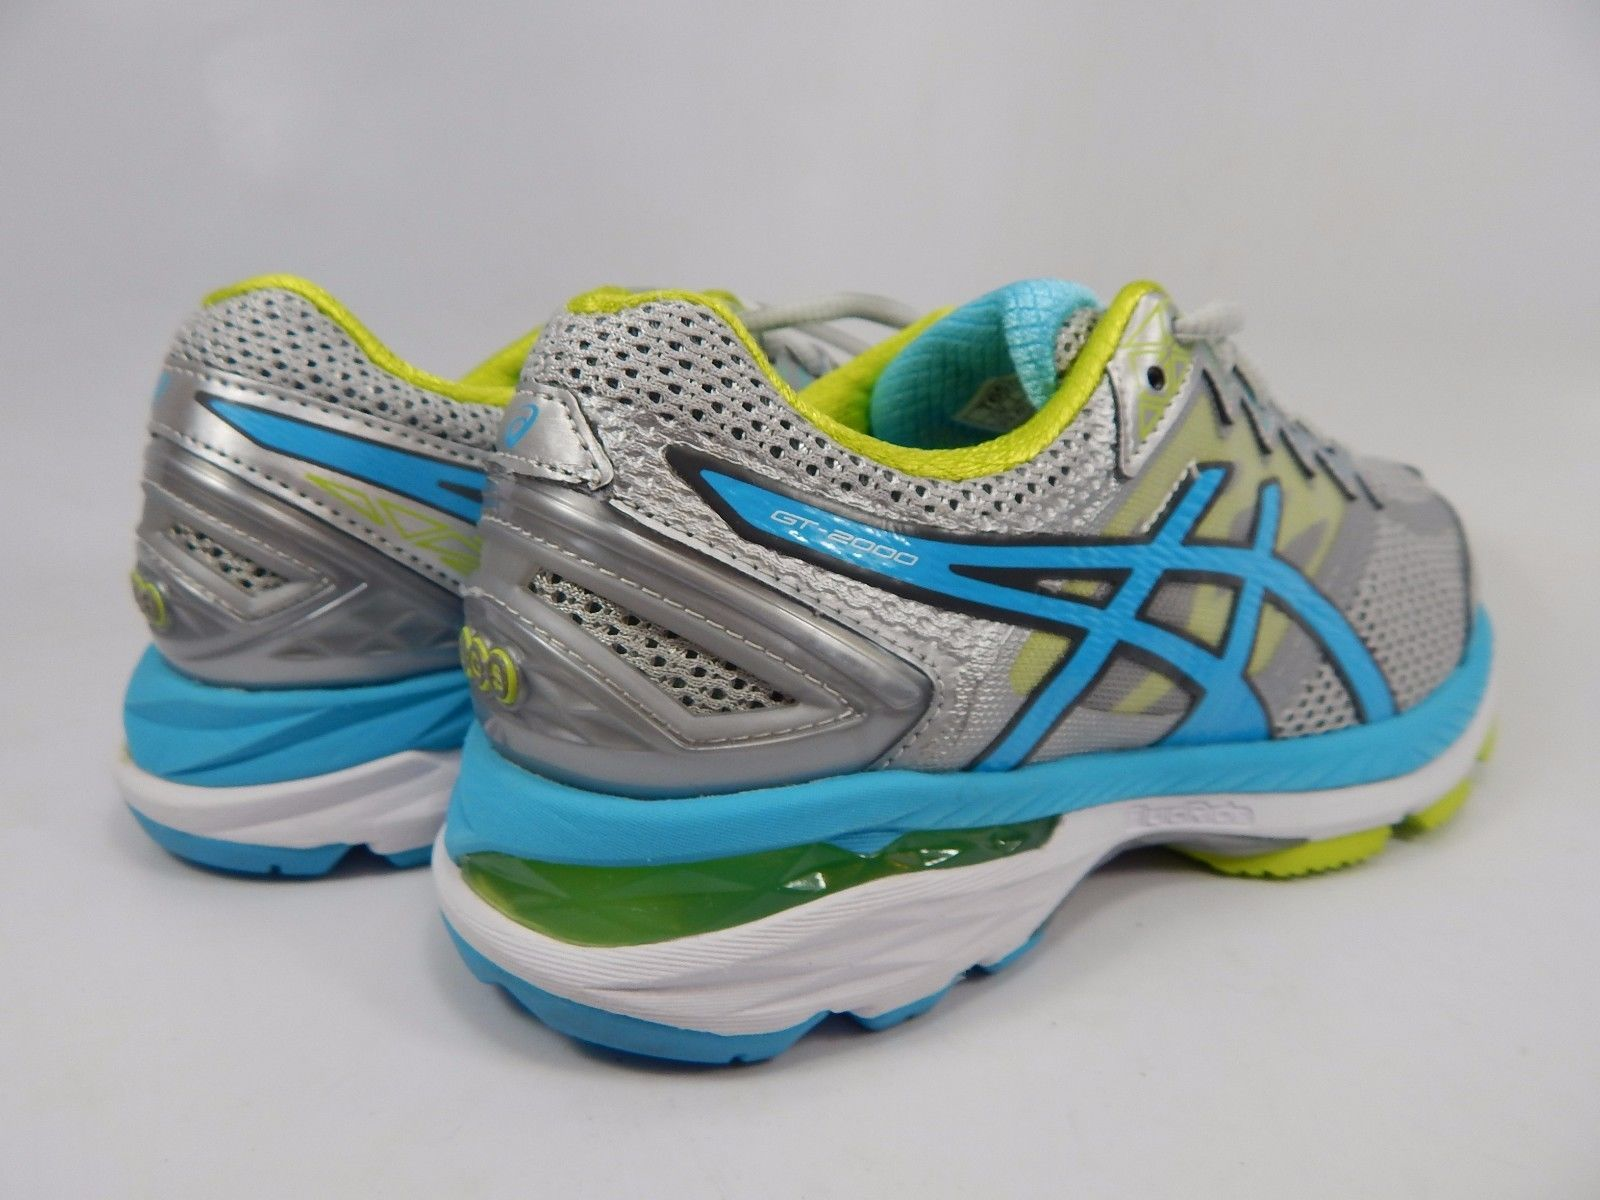 Asics GT 2000 v 4 Women's Running Shoes Size US 6.5 D WIDE EU 37.5 Silver T657N